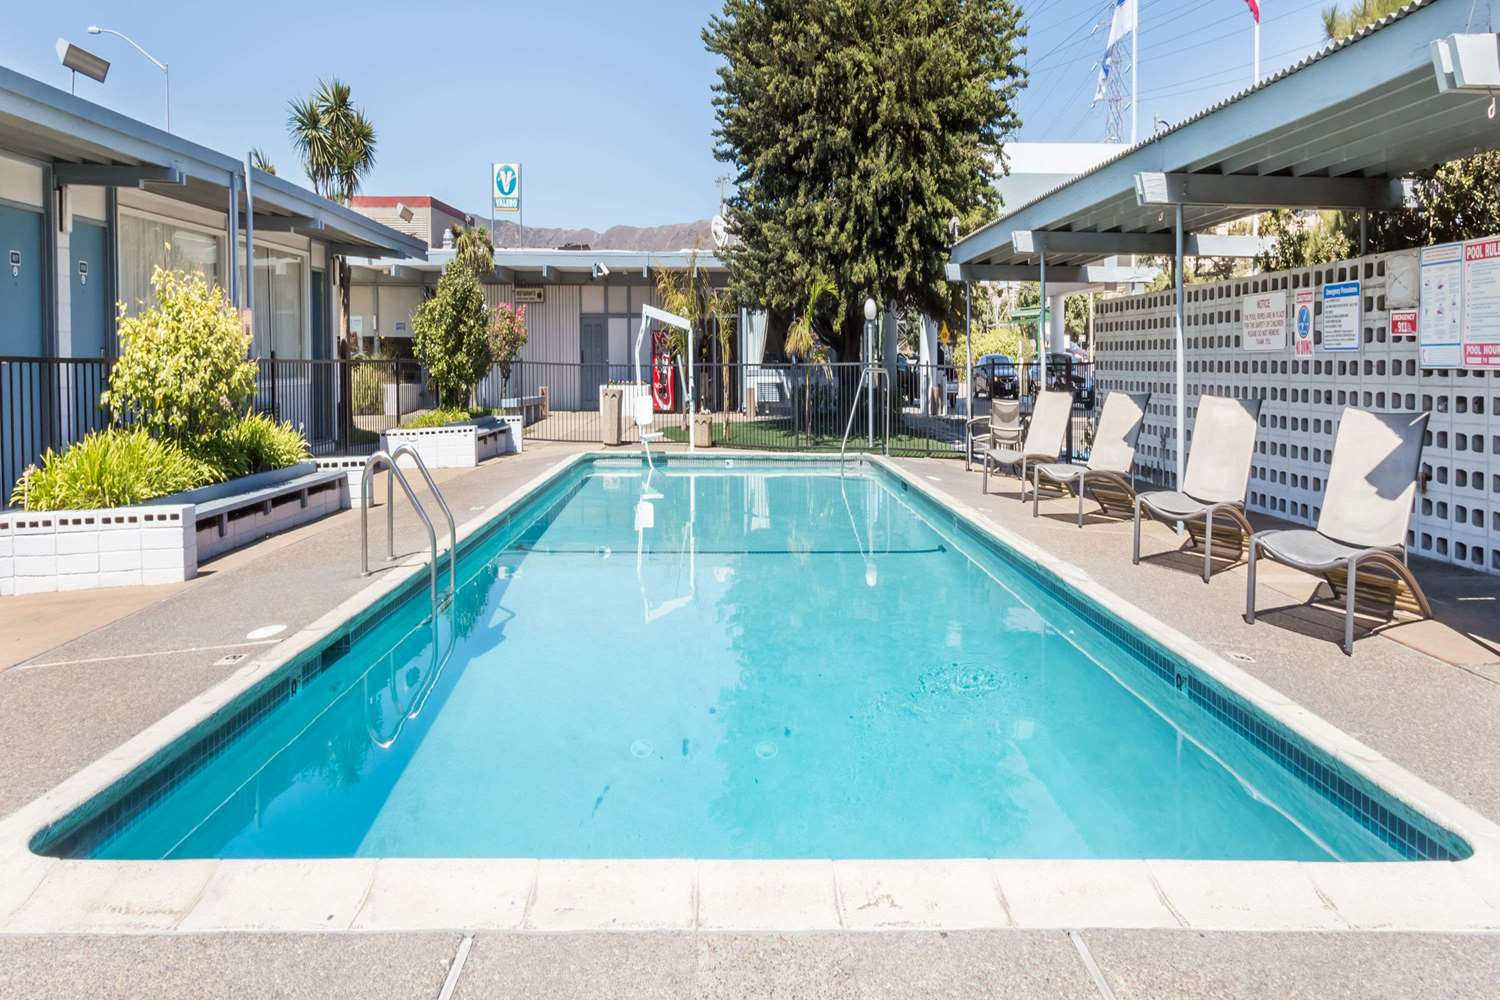 Pool - Travelodge SFO Airport South San Francisco